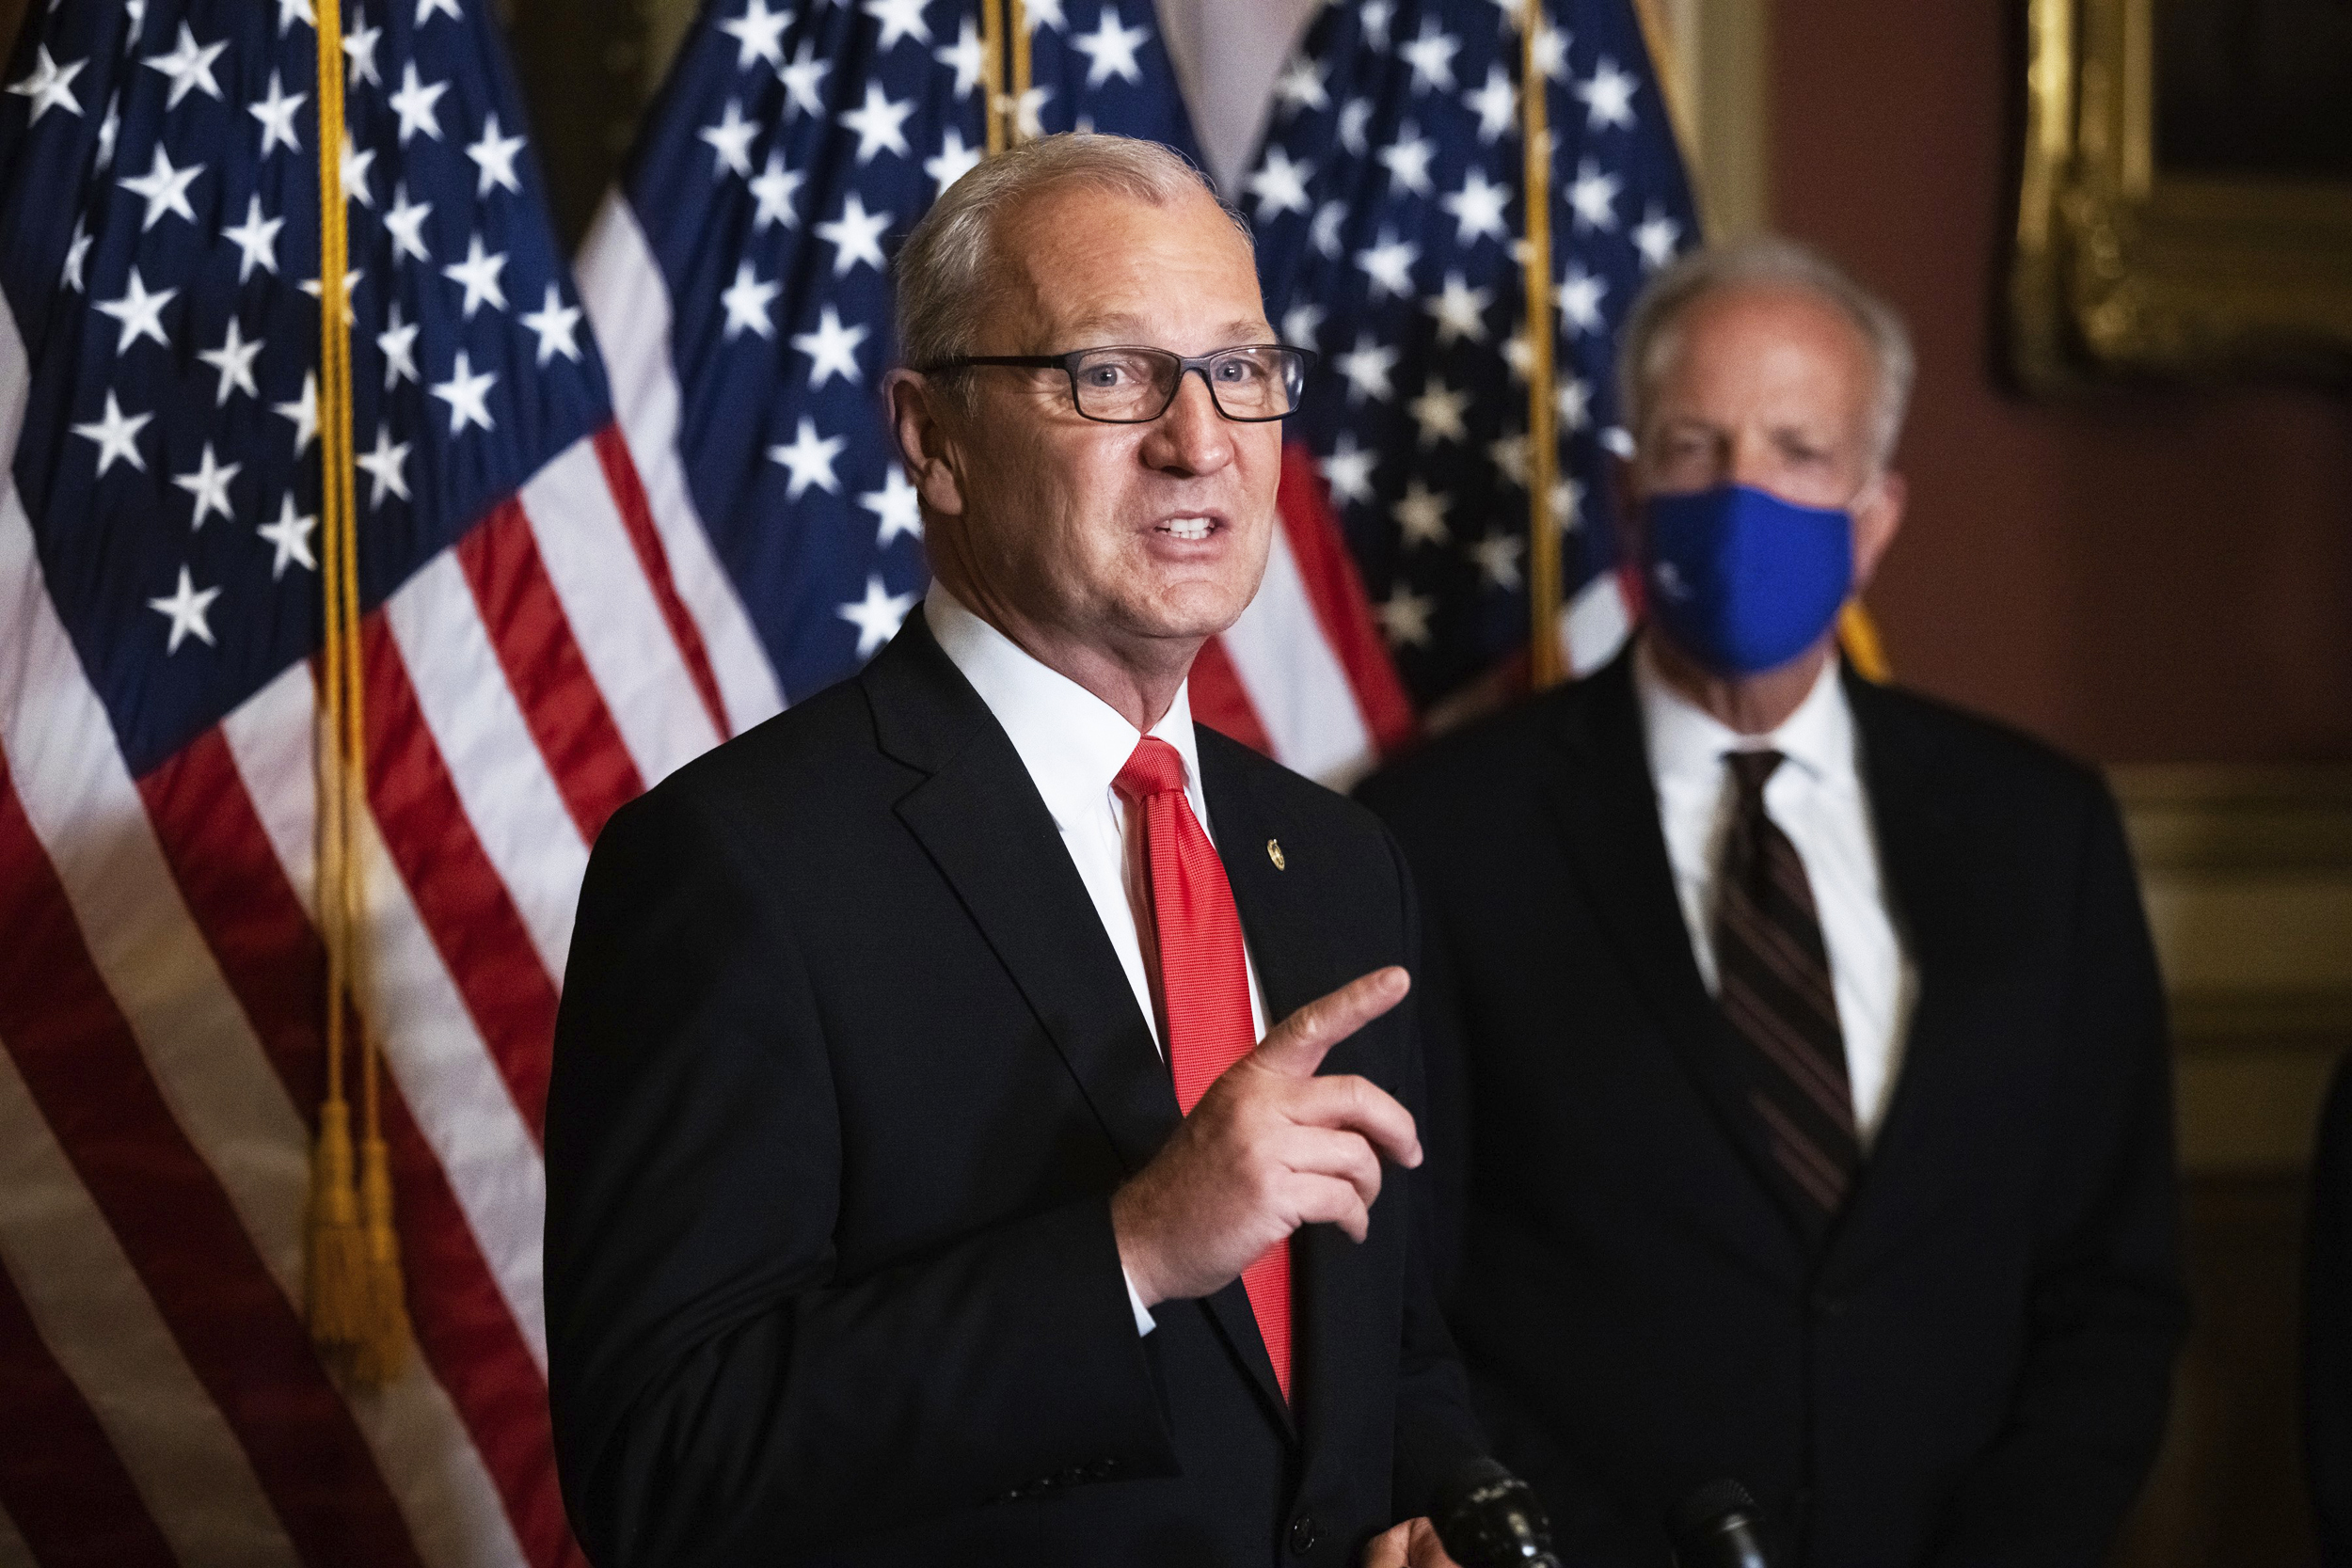 GOP-Sen.-Cramer-says-it's-'past-time'-to-start-transition-as-challenges-continue